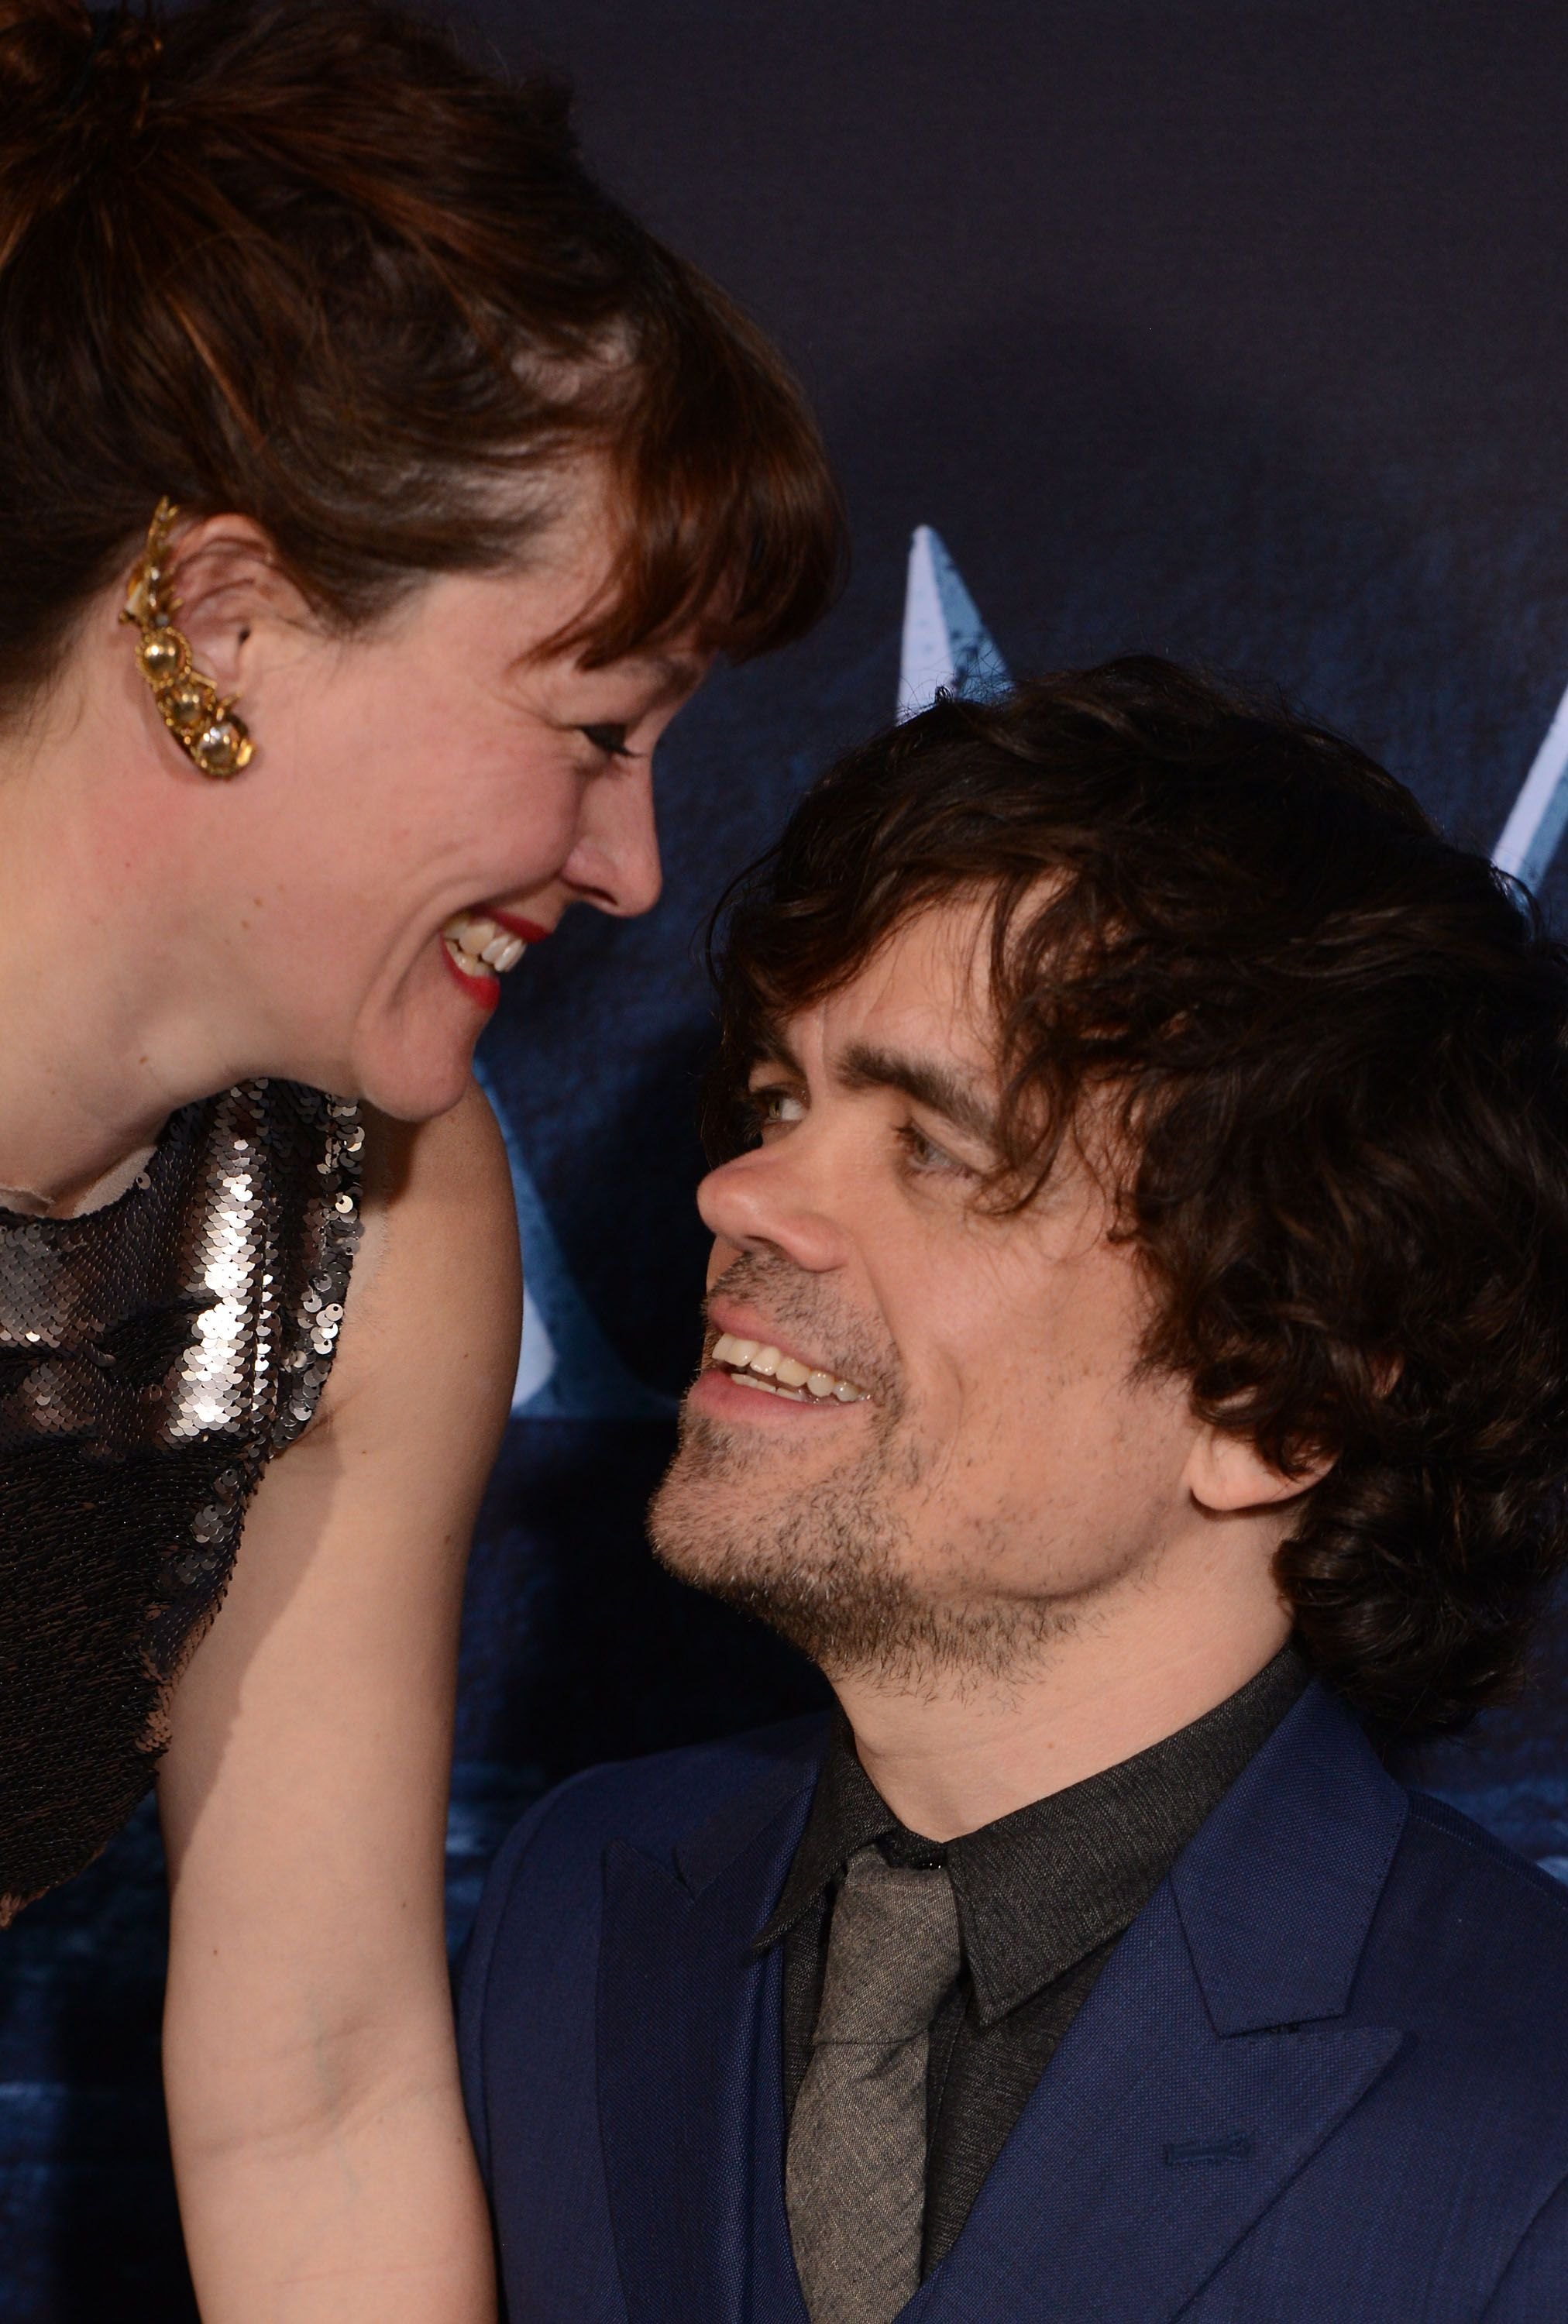 Peter Dinklage and Erica Schmidt at the premiere of HBO's 'Game Of Thrones' Season 6 in 2016 in Hollywood, California | Source: Getty Images